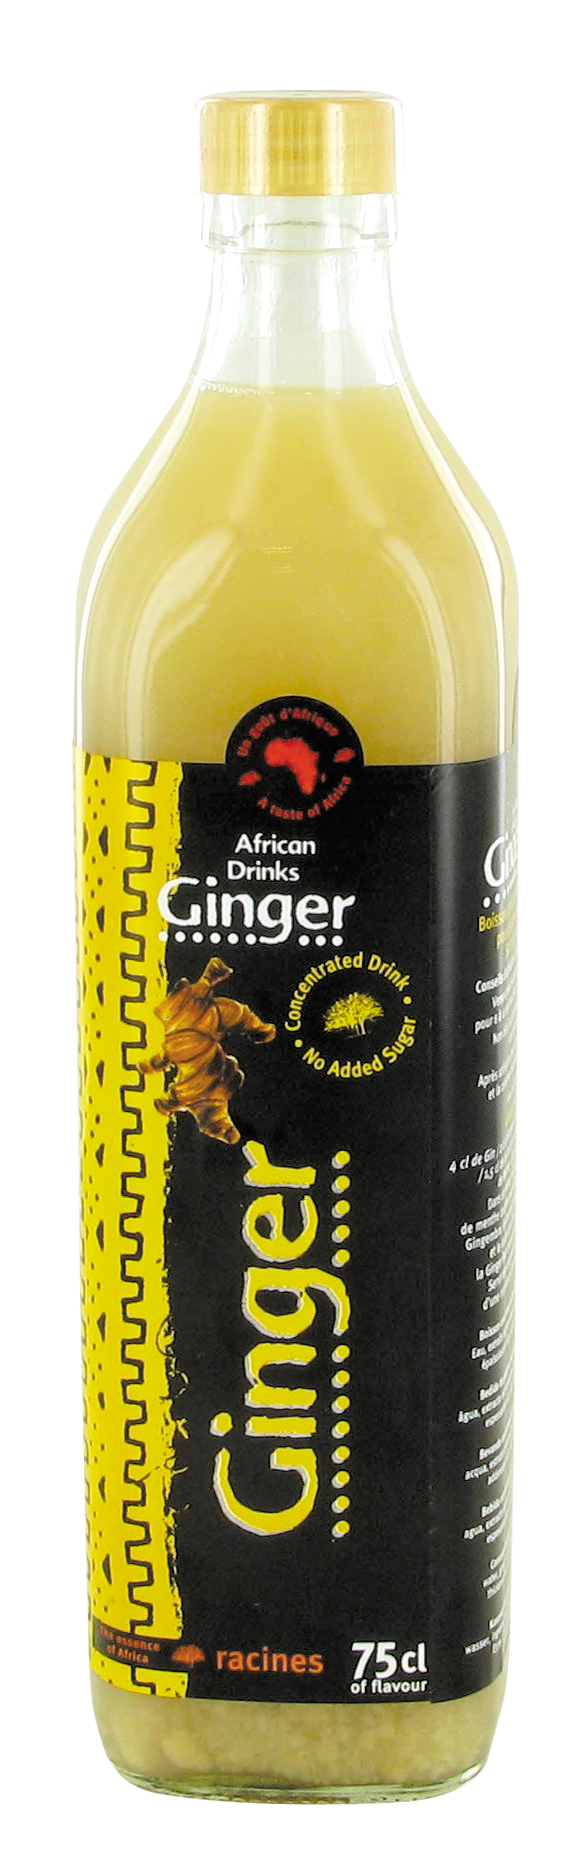 Jus concentré de gingembre (750 ml)